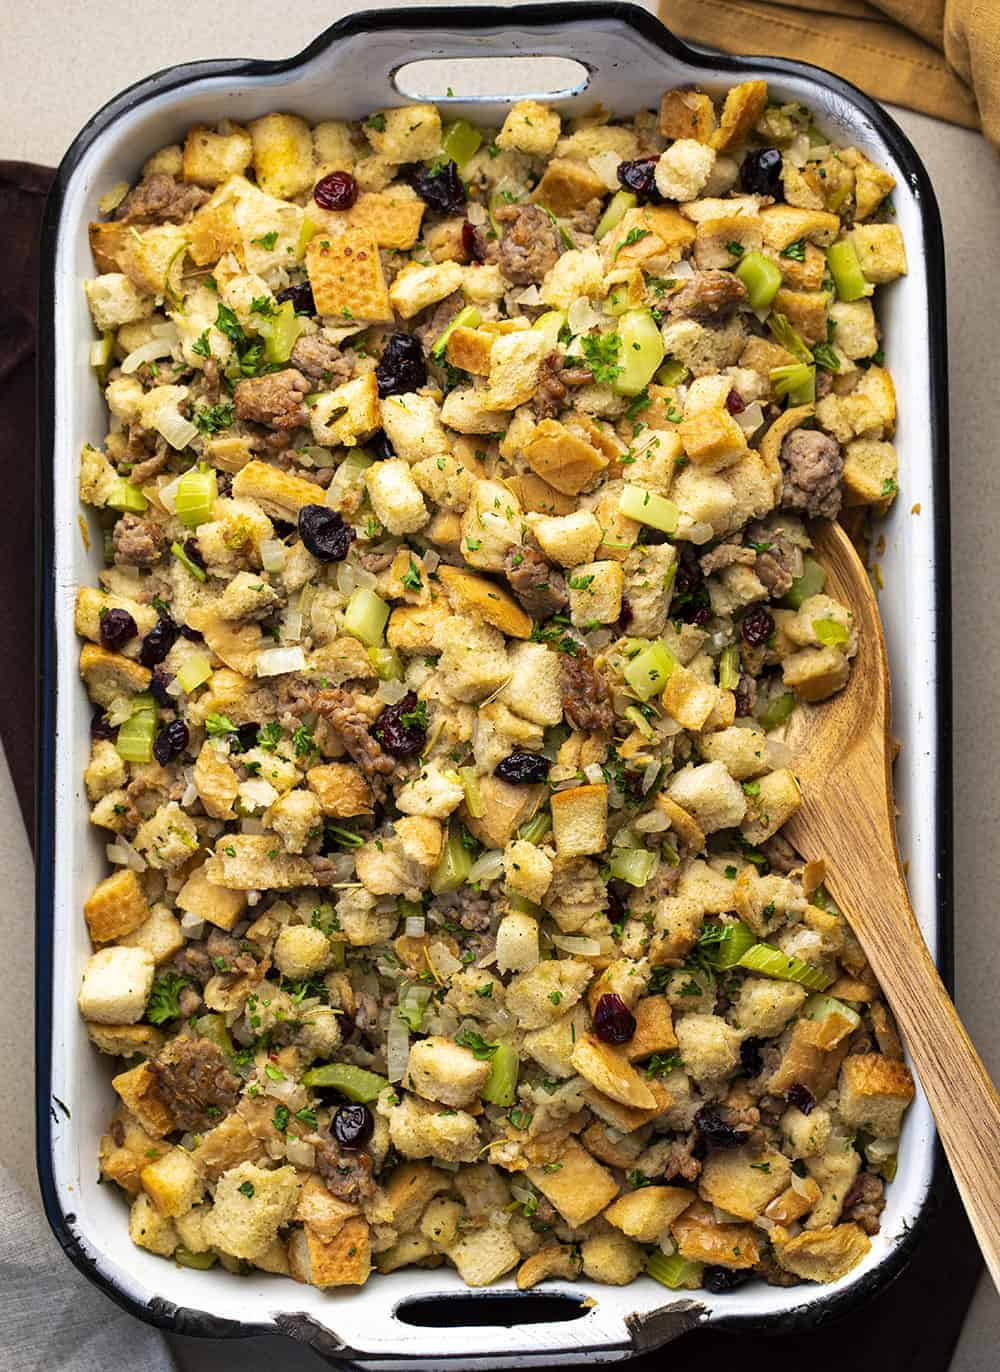 Sausage Stuffing in a Pan with Wooden Spoon